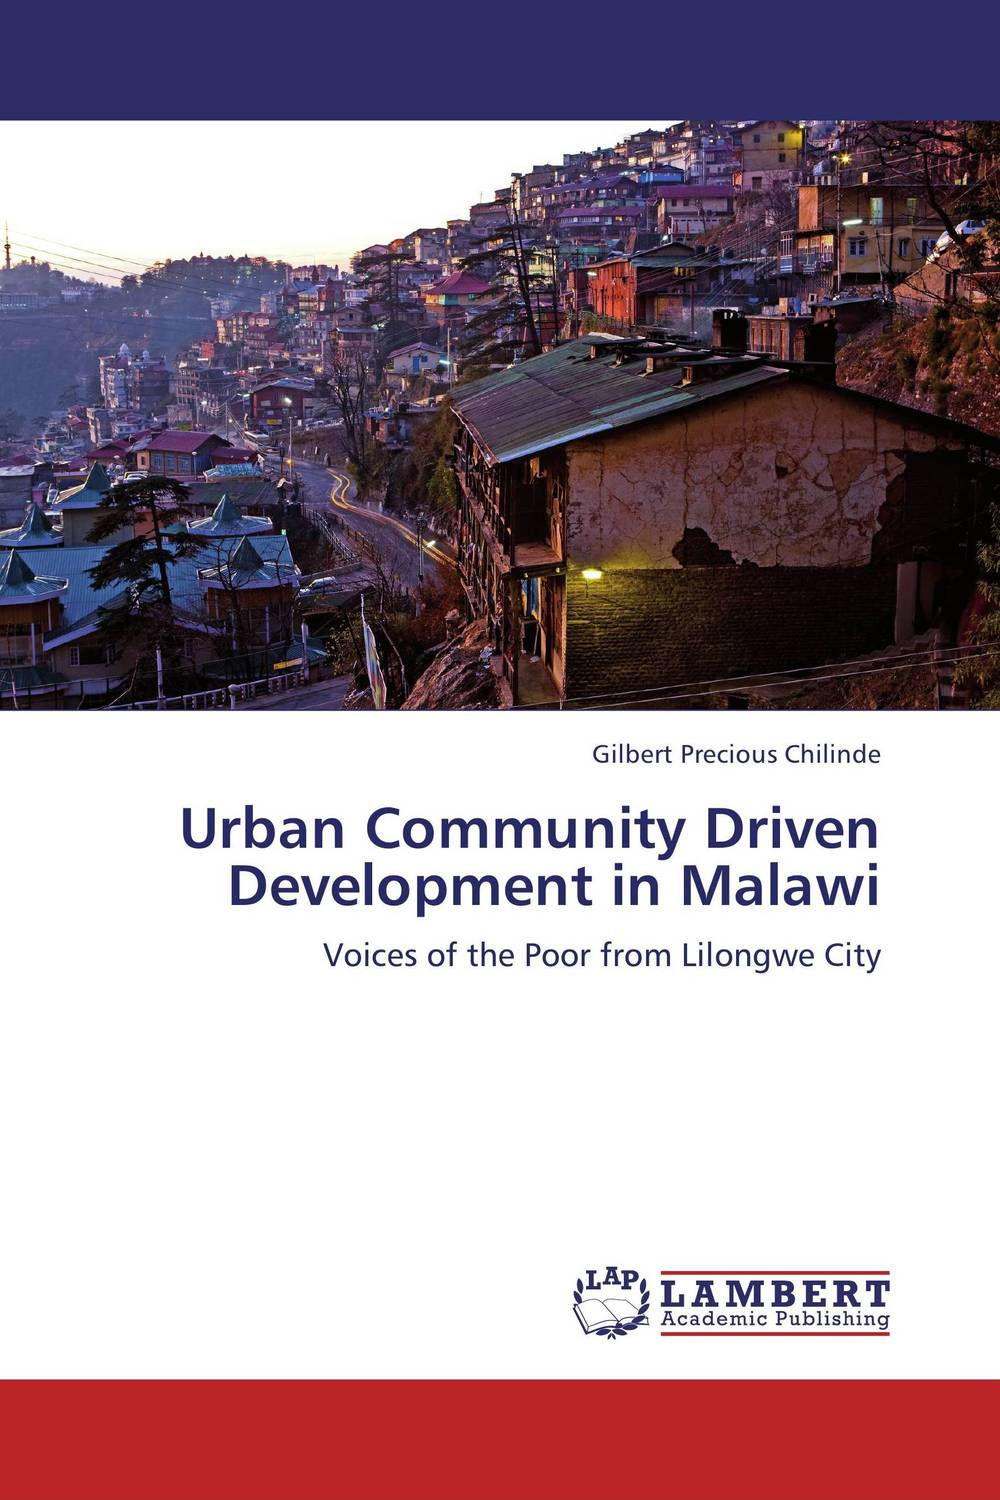 Urban Community Driven Development in Malawi driven to distraction